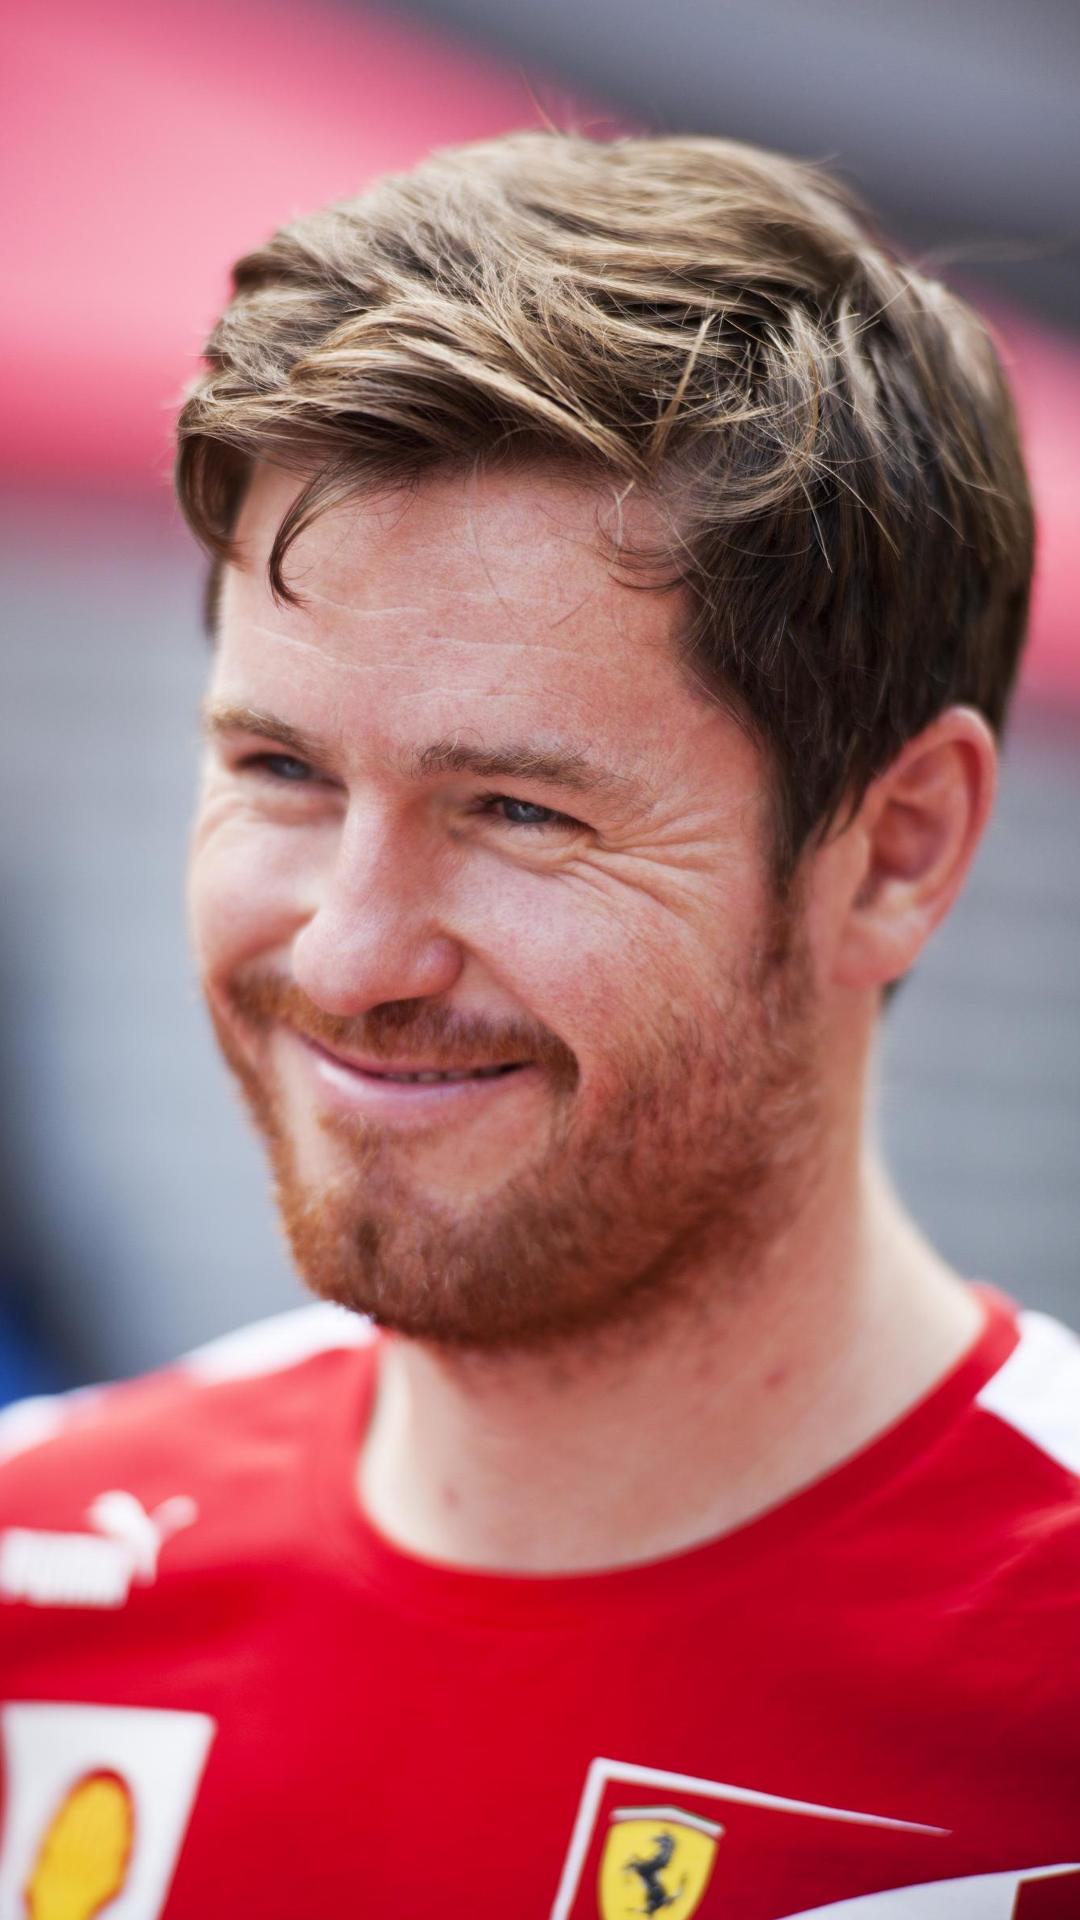 Smedley joins Williams team in Bahrain